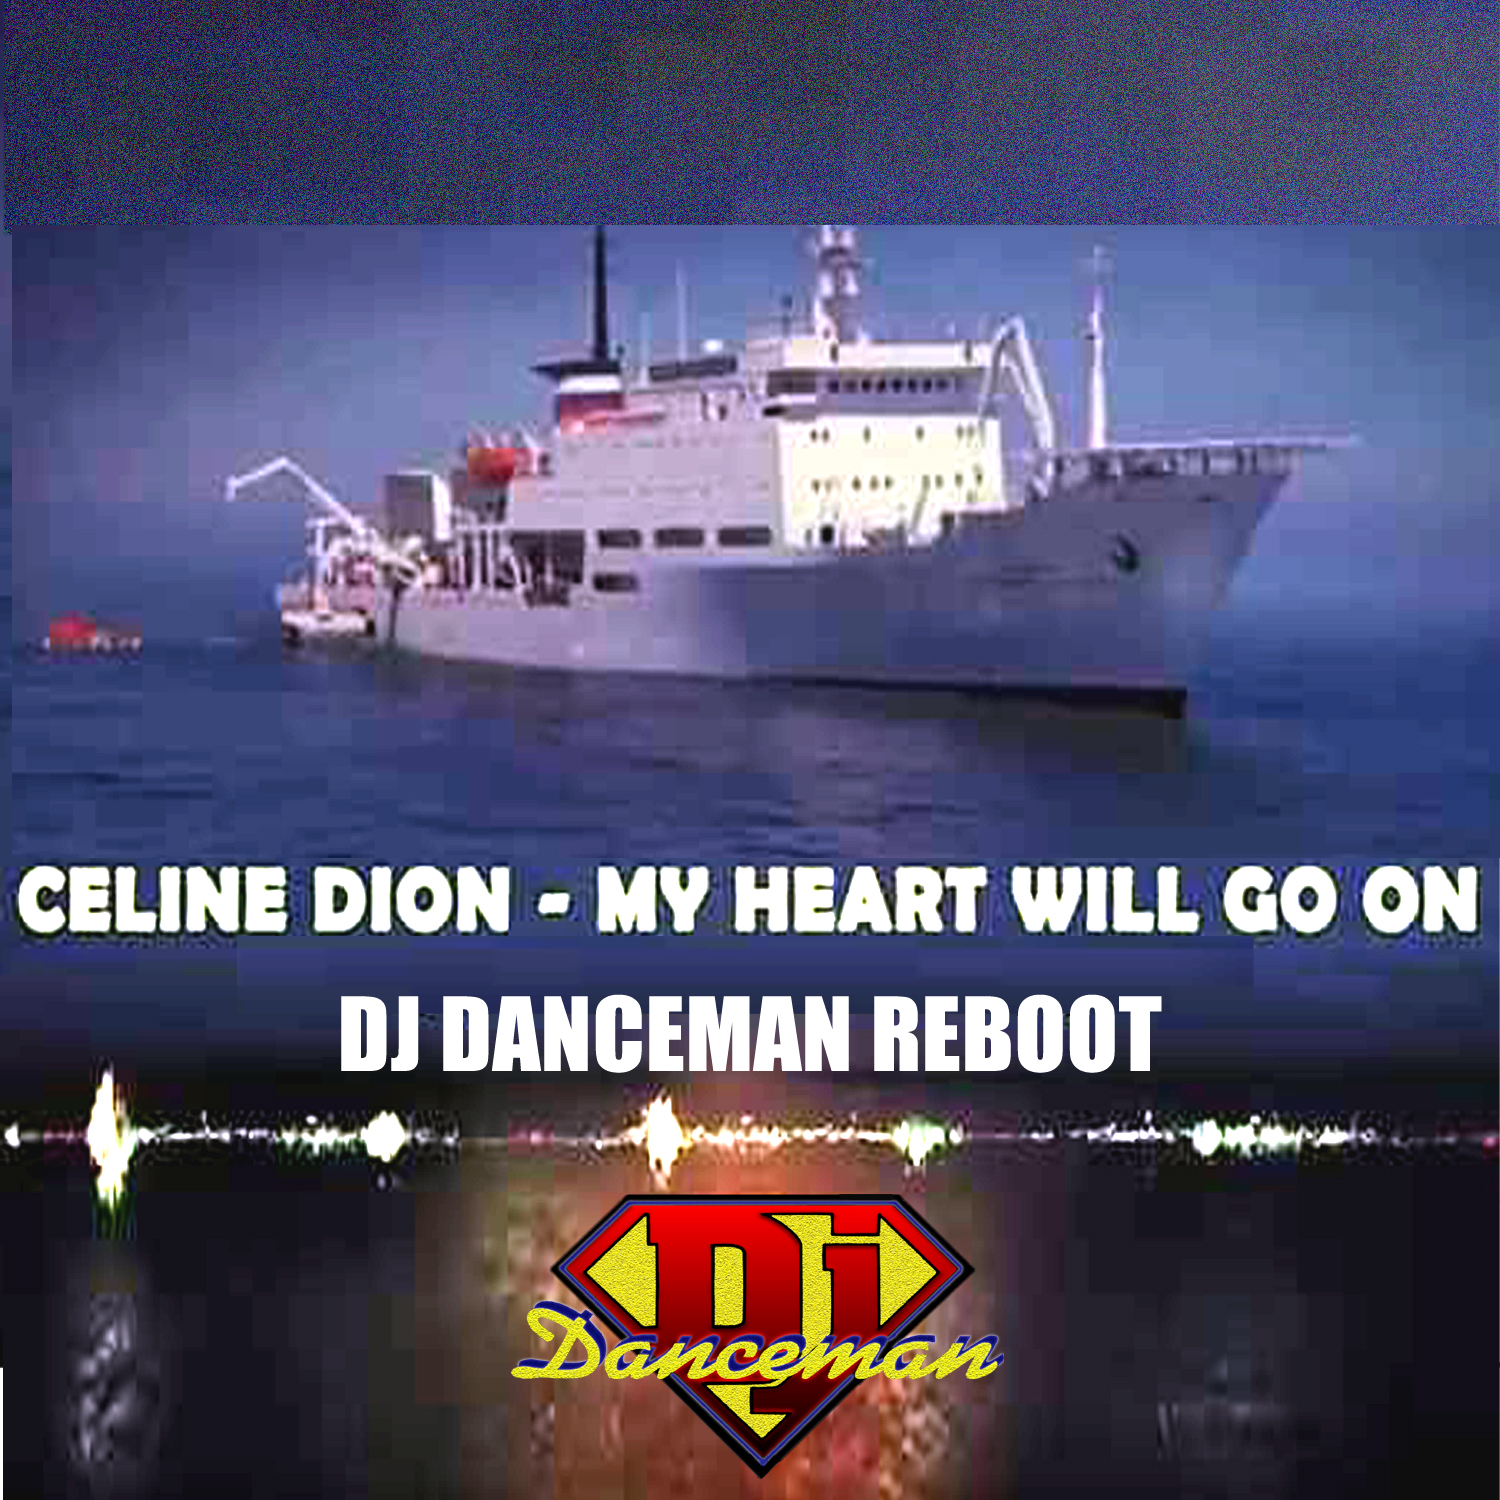 Celine Dion - My Heart Will Go On Dj Danceman Reboot